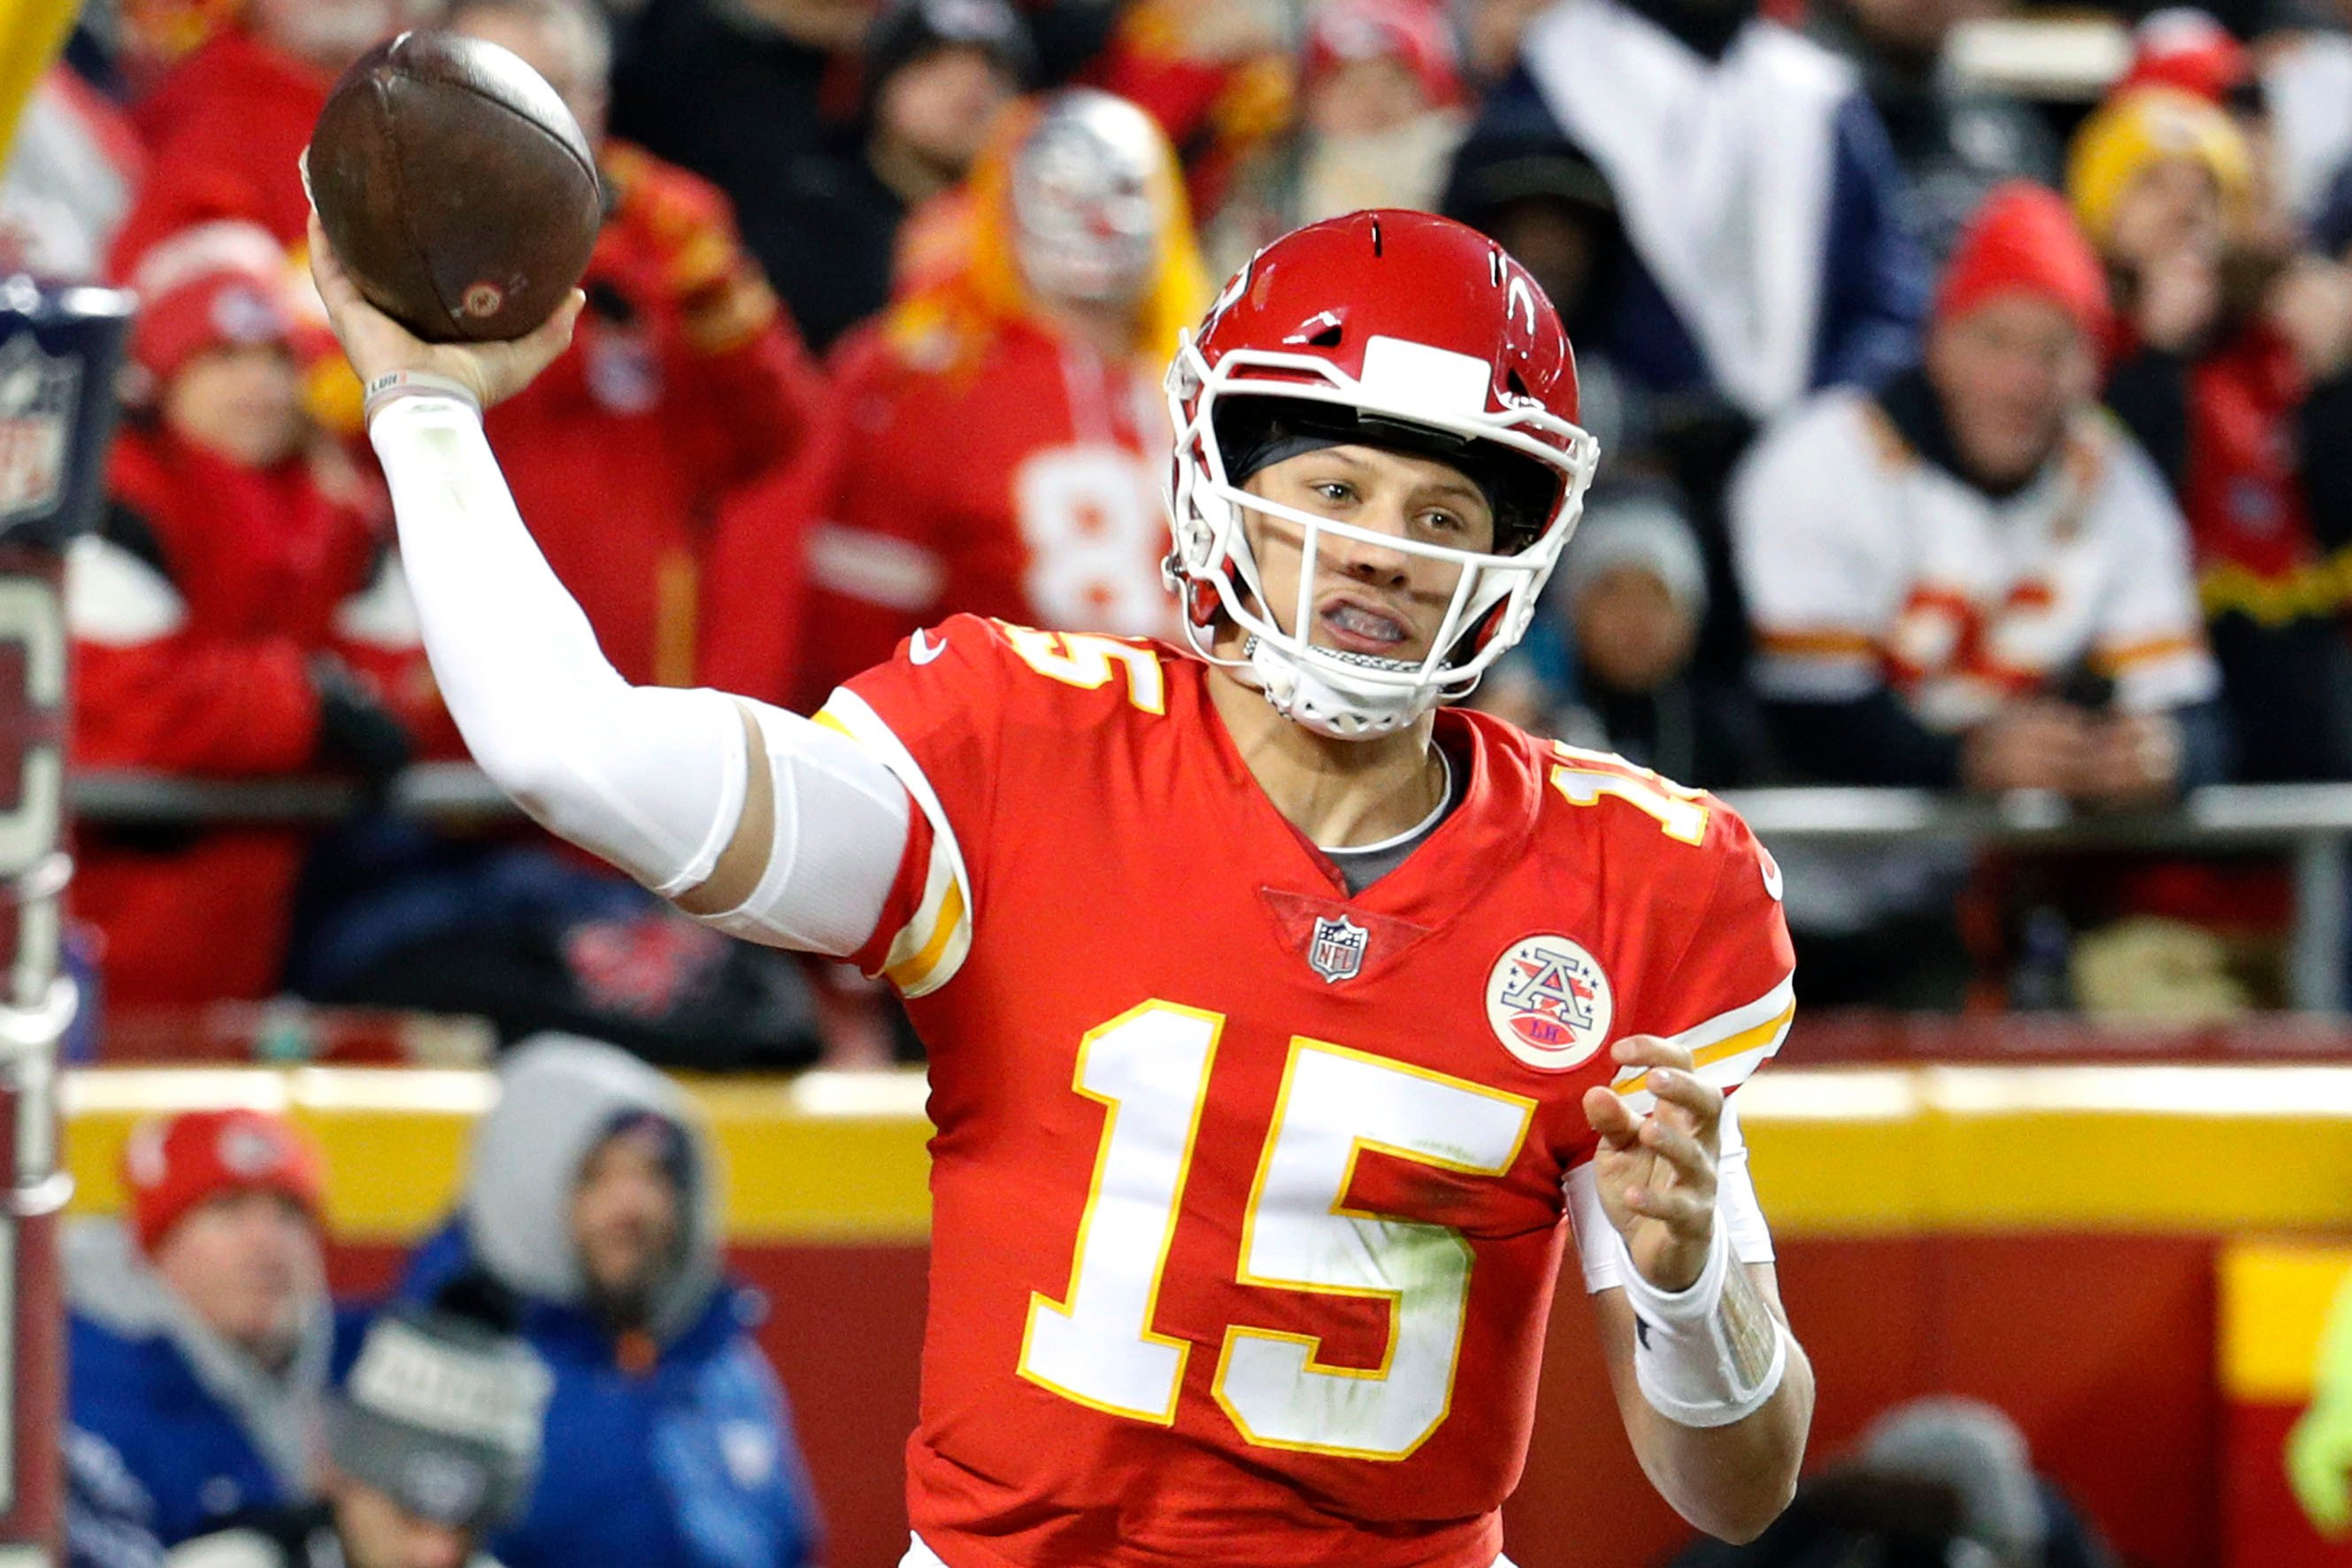 Andy Reid and the Chiefs won't let this one get away